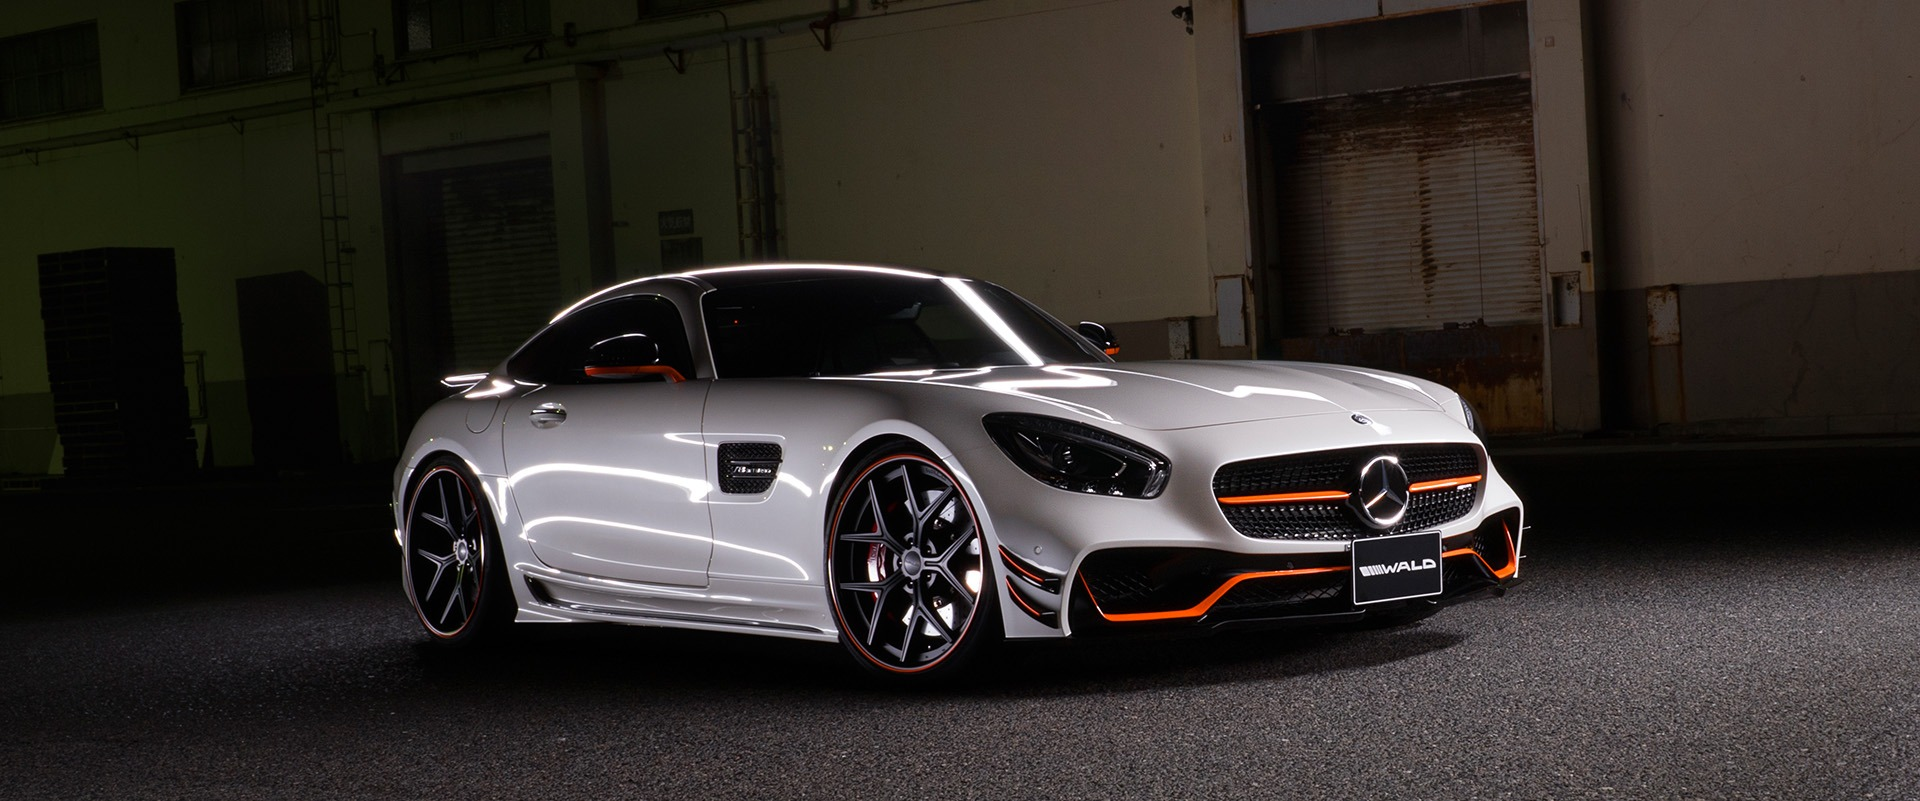 wald amg gt home page banner